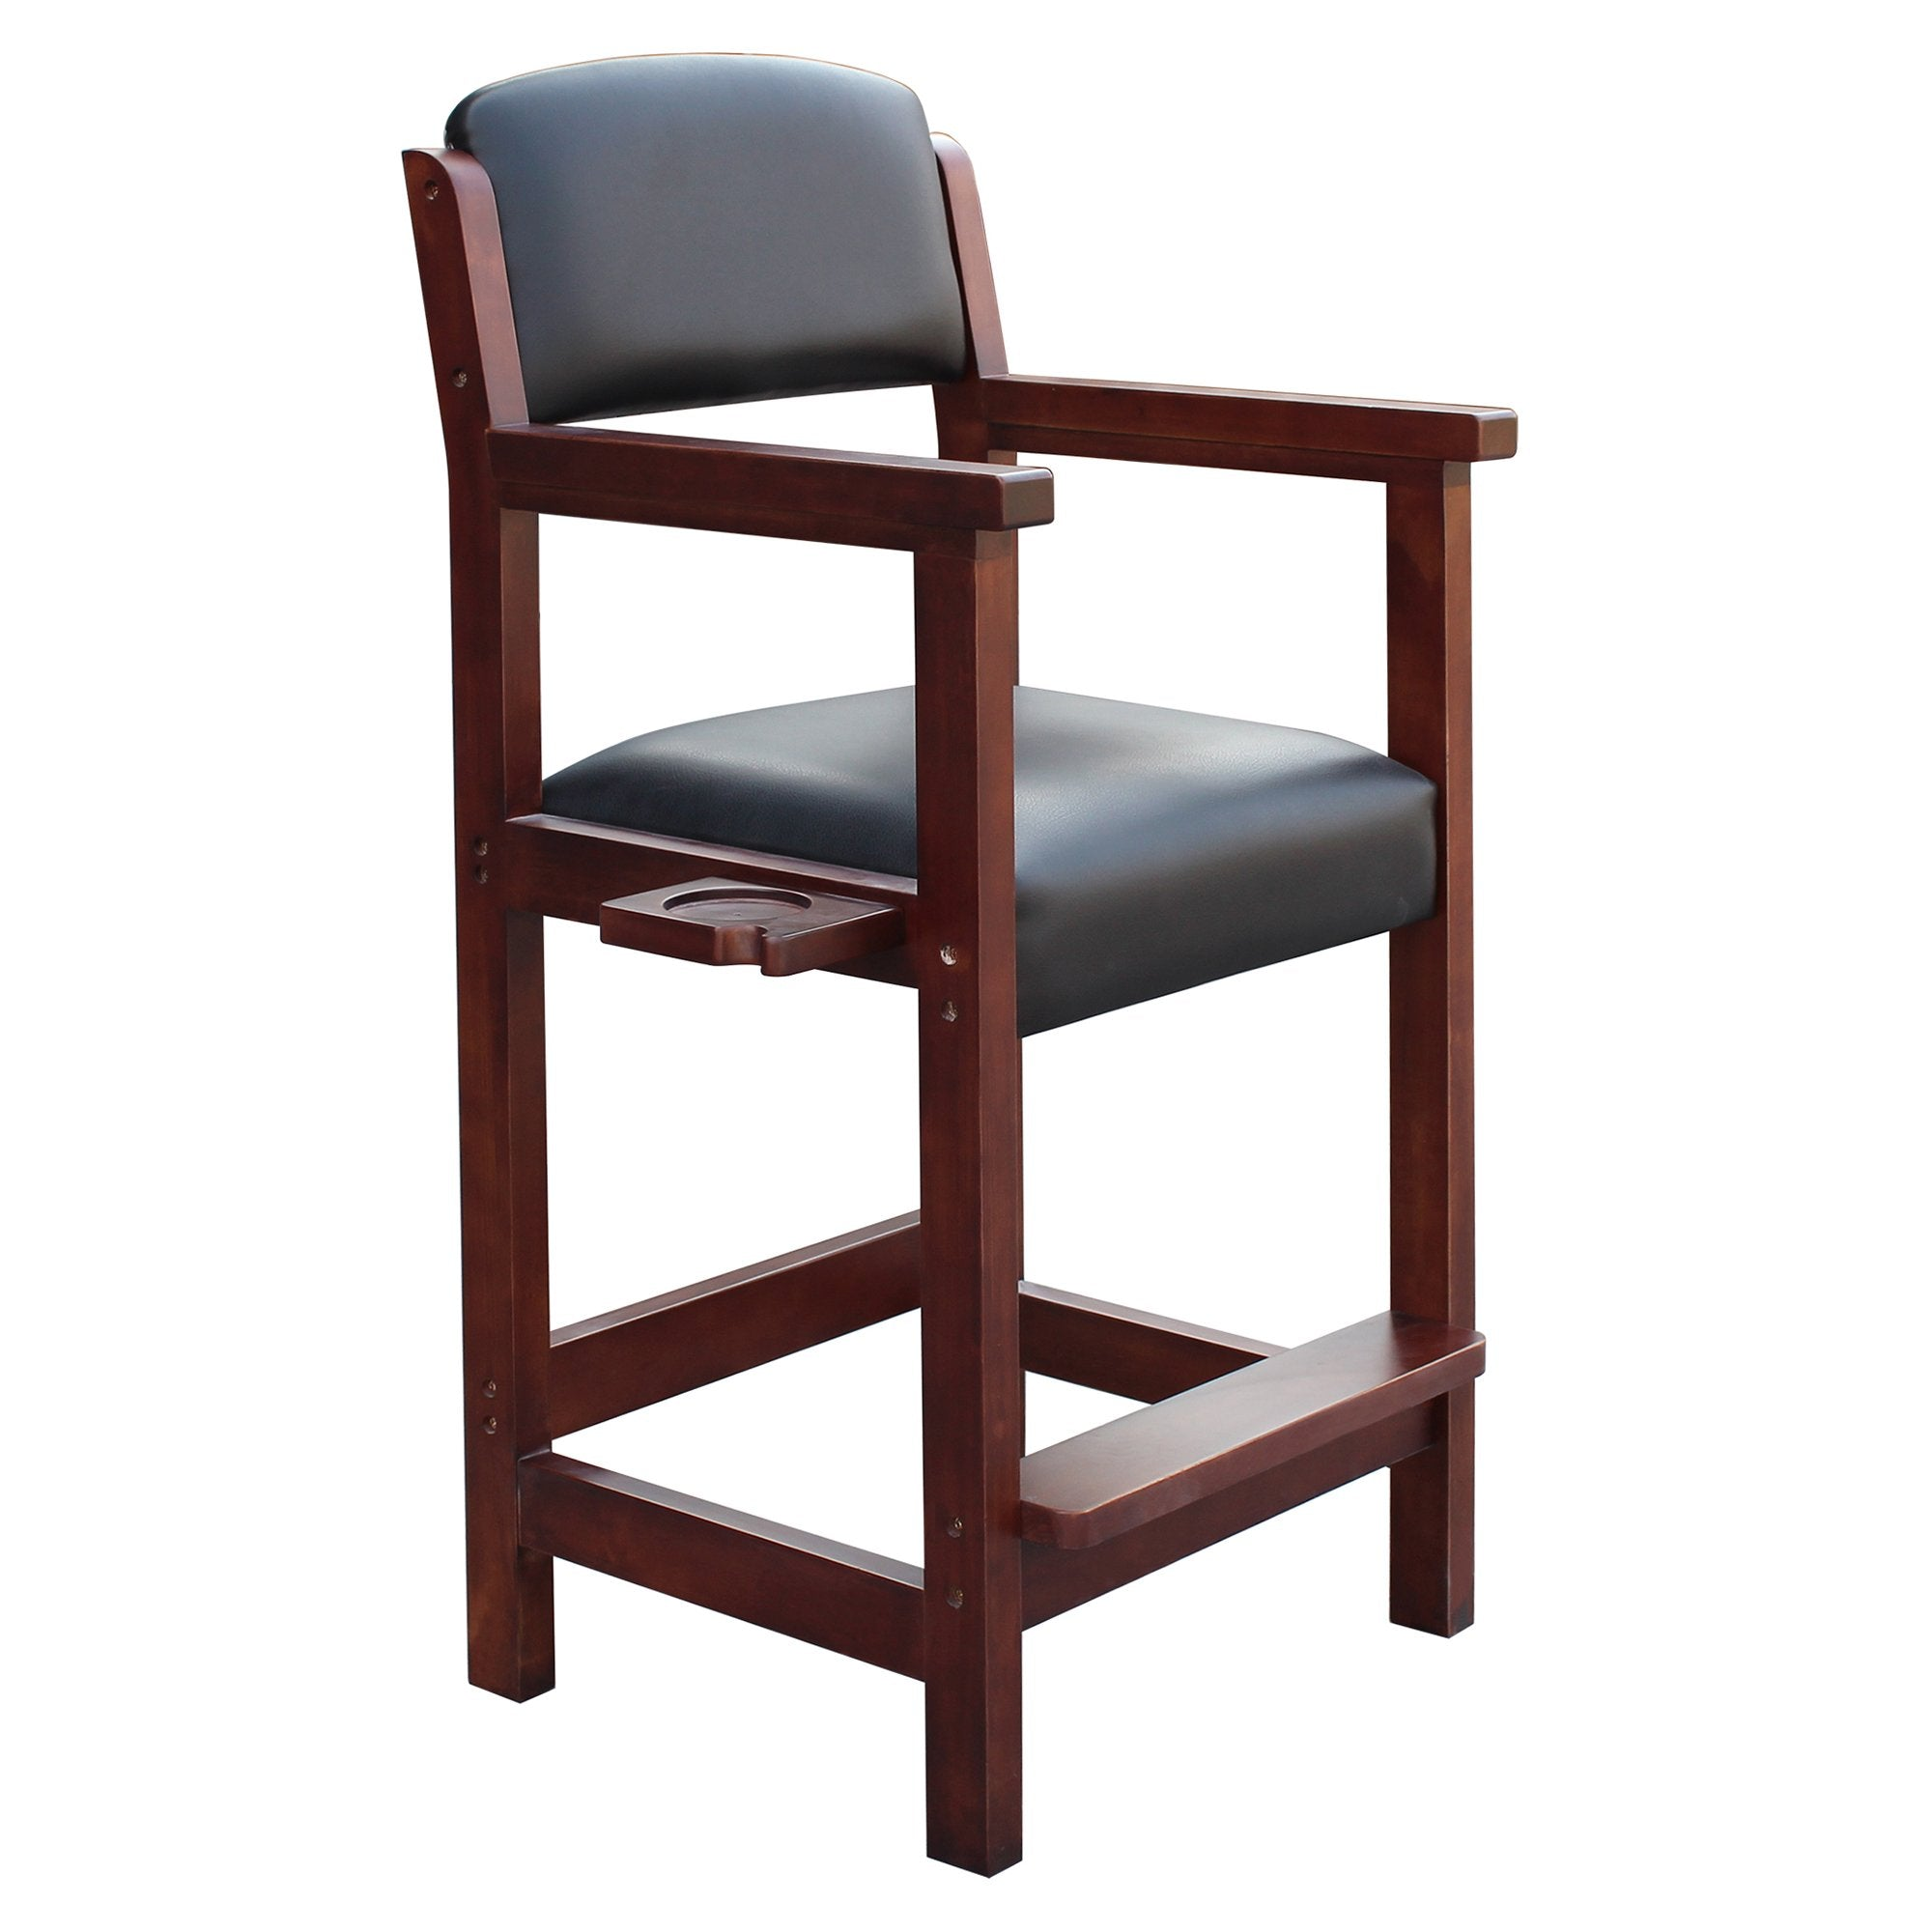 Hathaway Cambridge Antique Walnut Finish Spectator Chair - Gaming Blaze